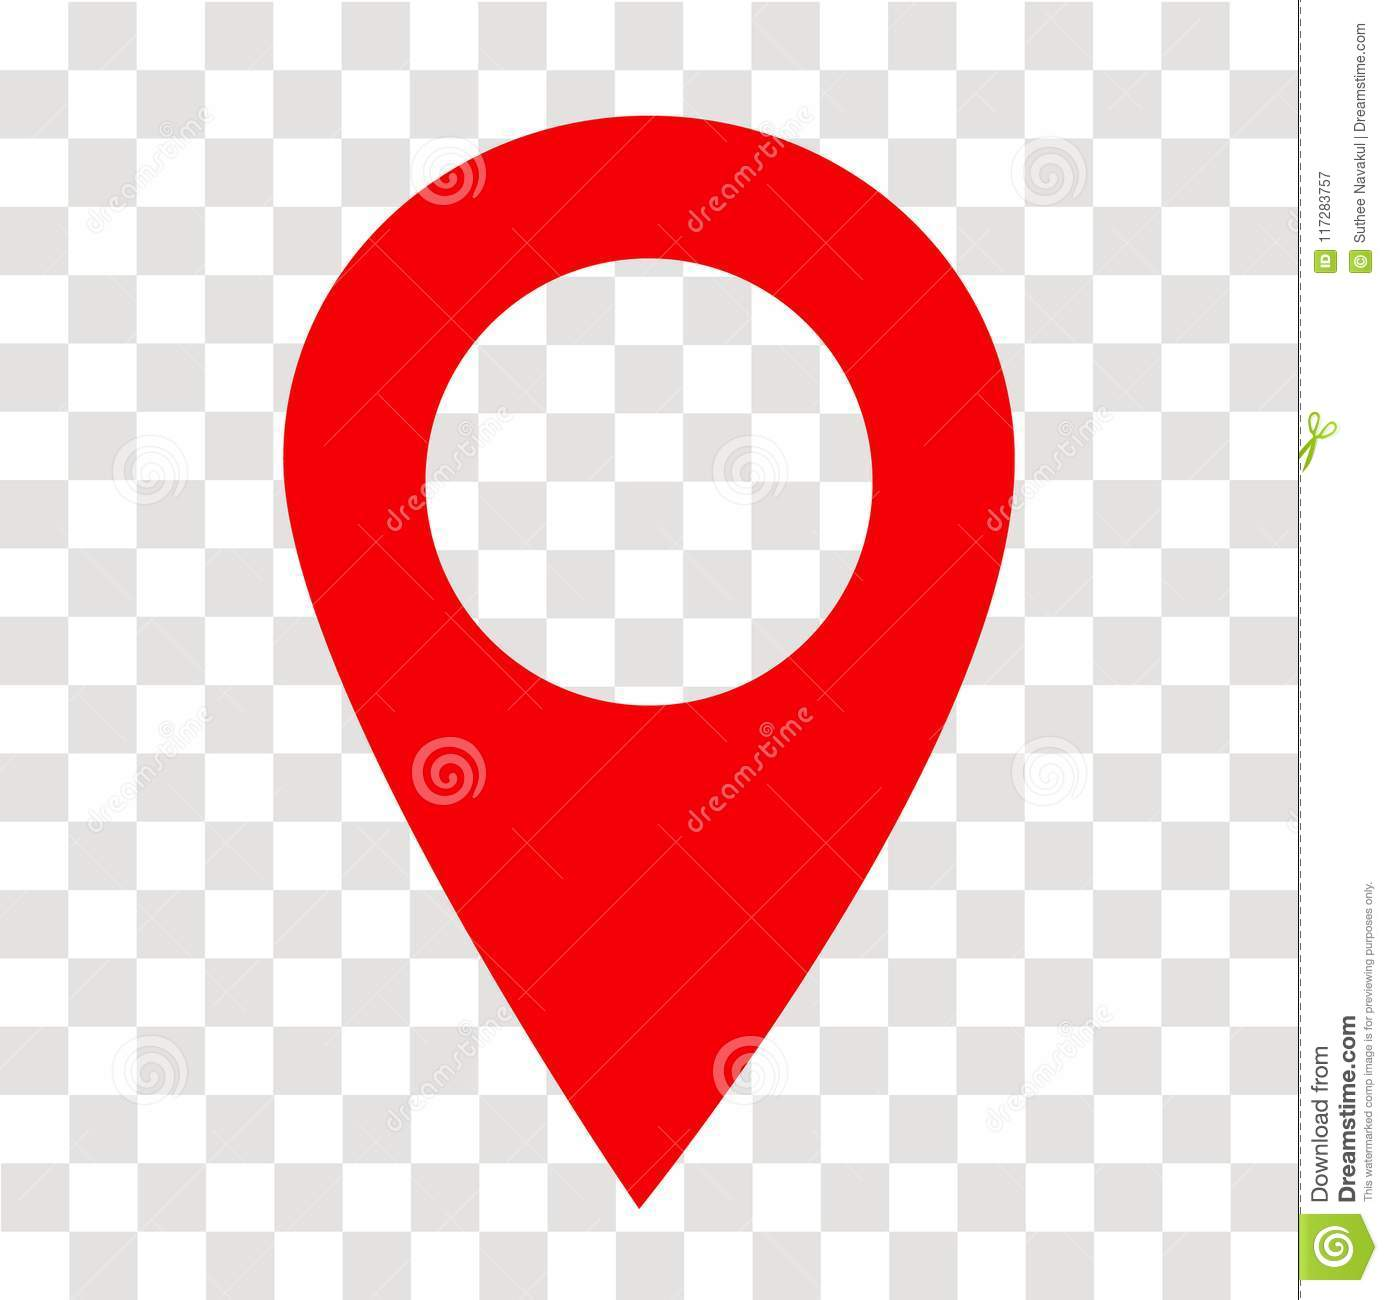 Location Pin Icon On Transparent  Location Pin Sign  Flat Style